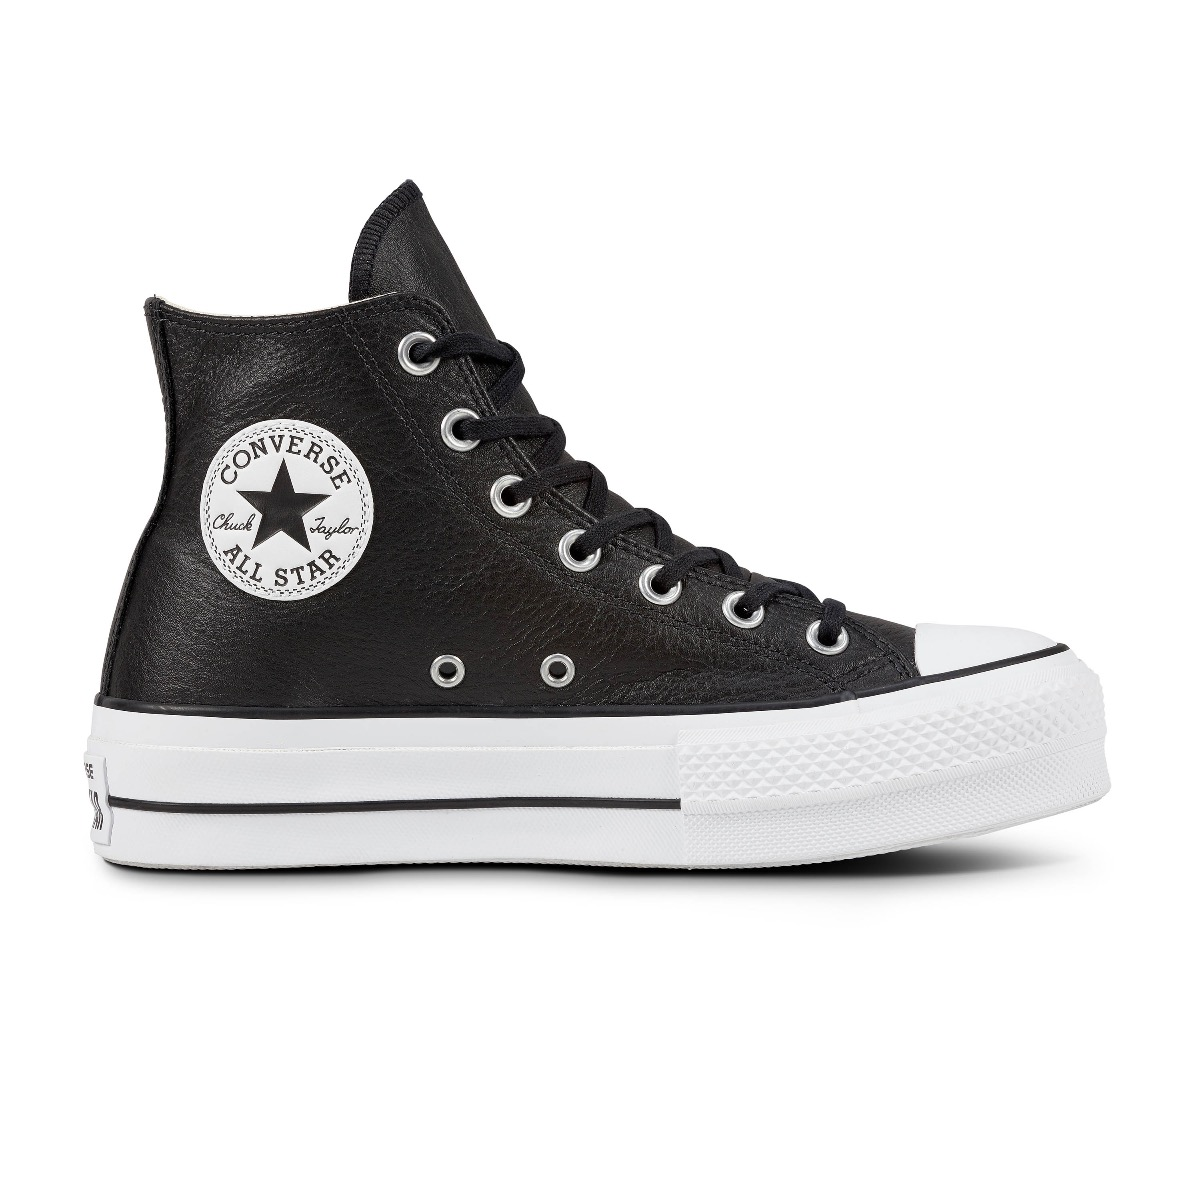 Converse All Stars Hoog Lift Clean 561675C Zwart-37 maat 37